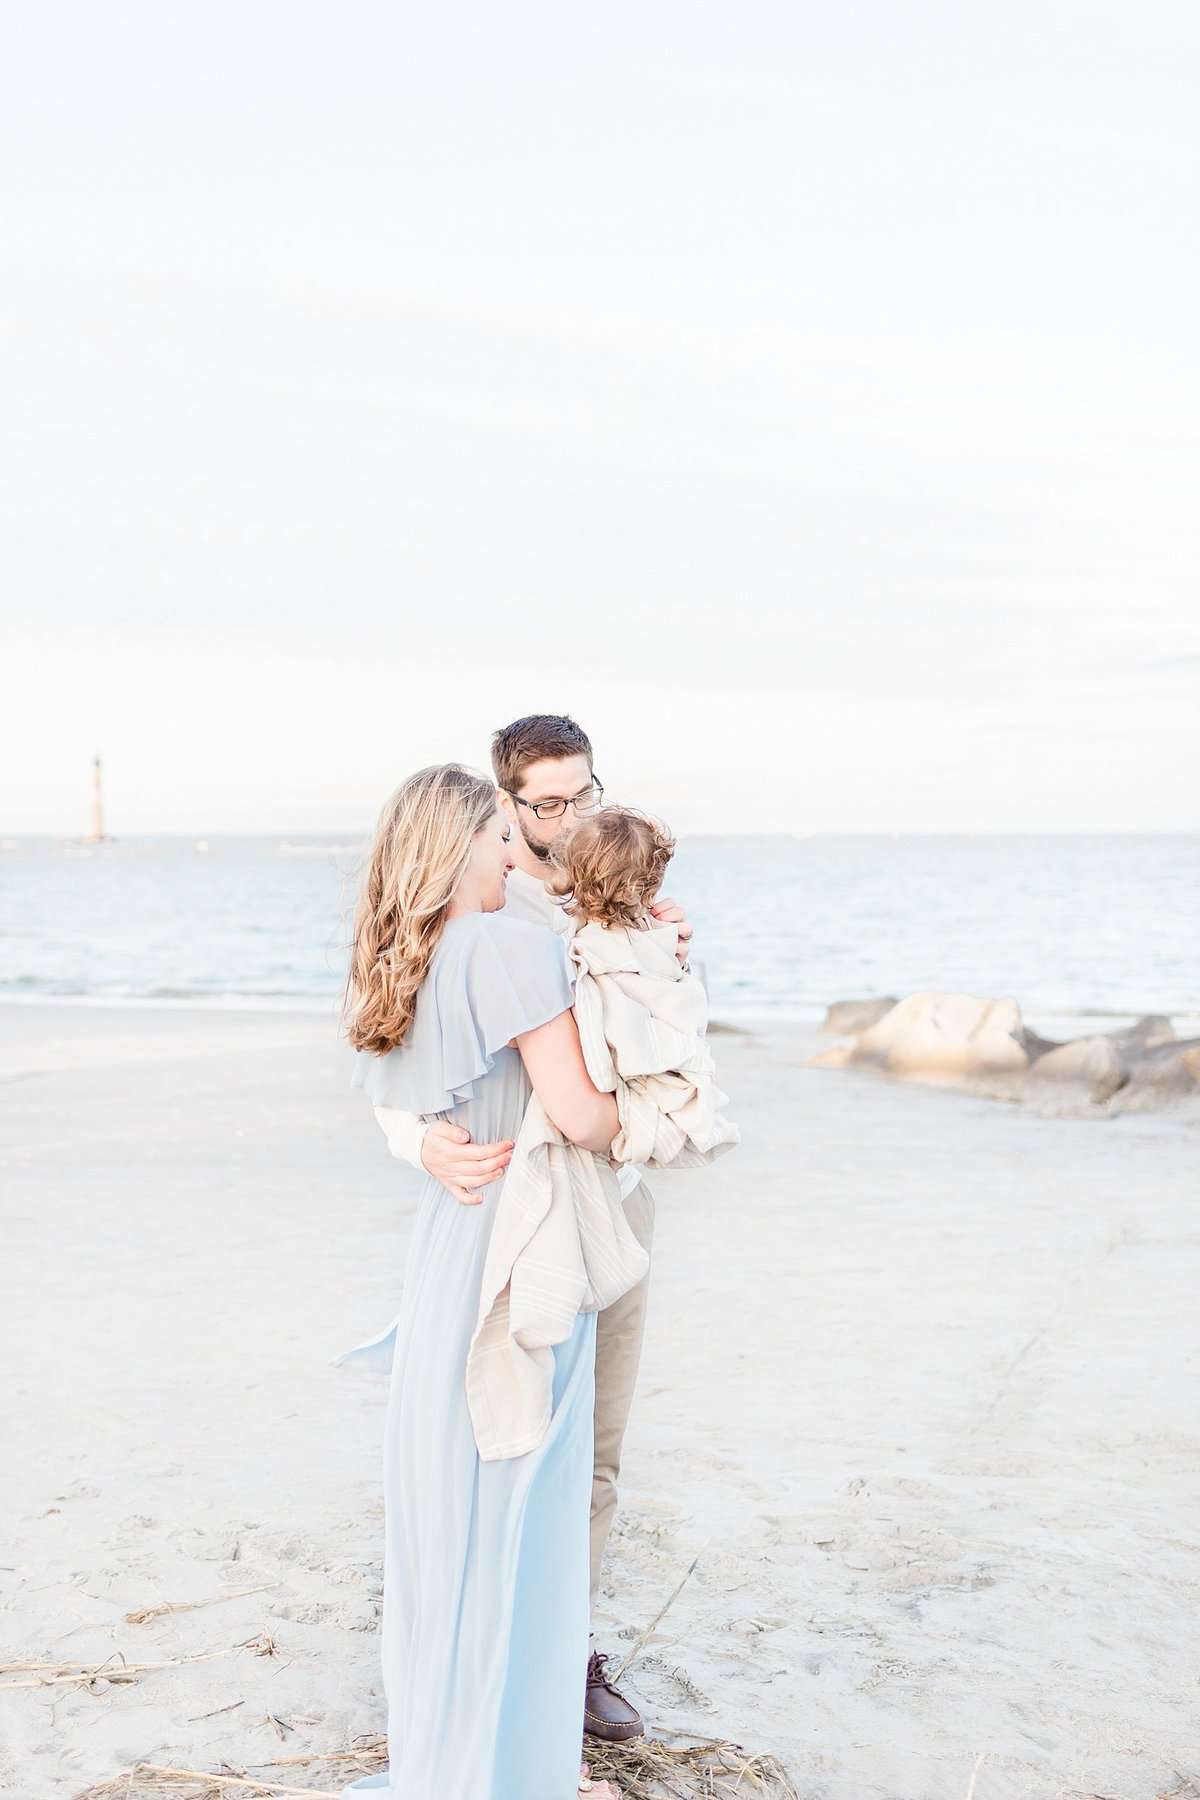 Charleston-Family-Photographer-Folly-Beach-Photographer-Beach-Photography-Charleston-Family-Session-27